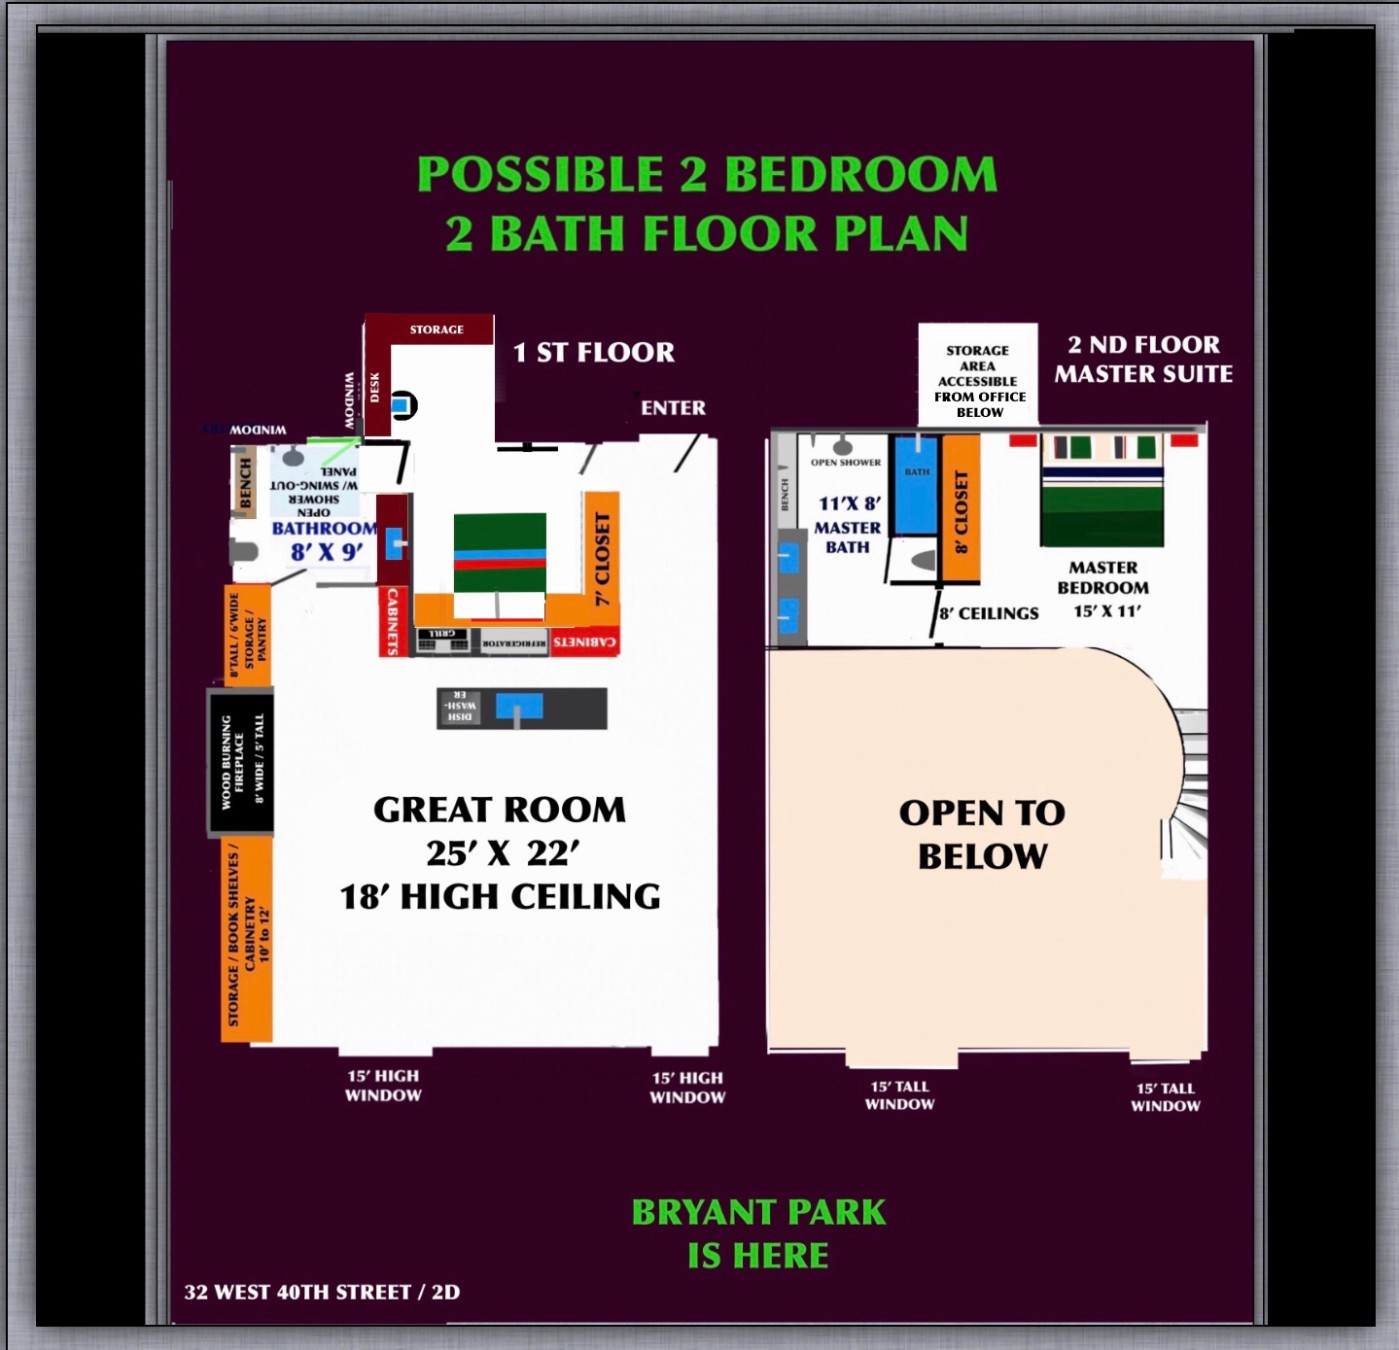 32 West 40th Street Midtown West New York NY 10018